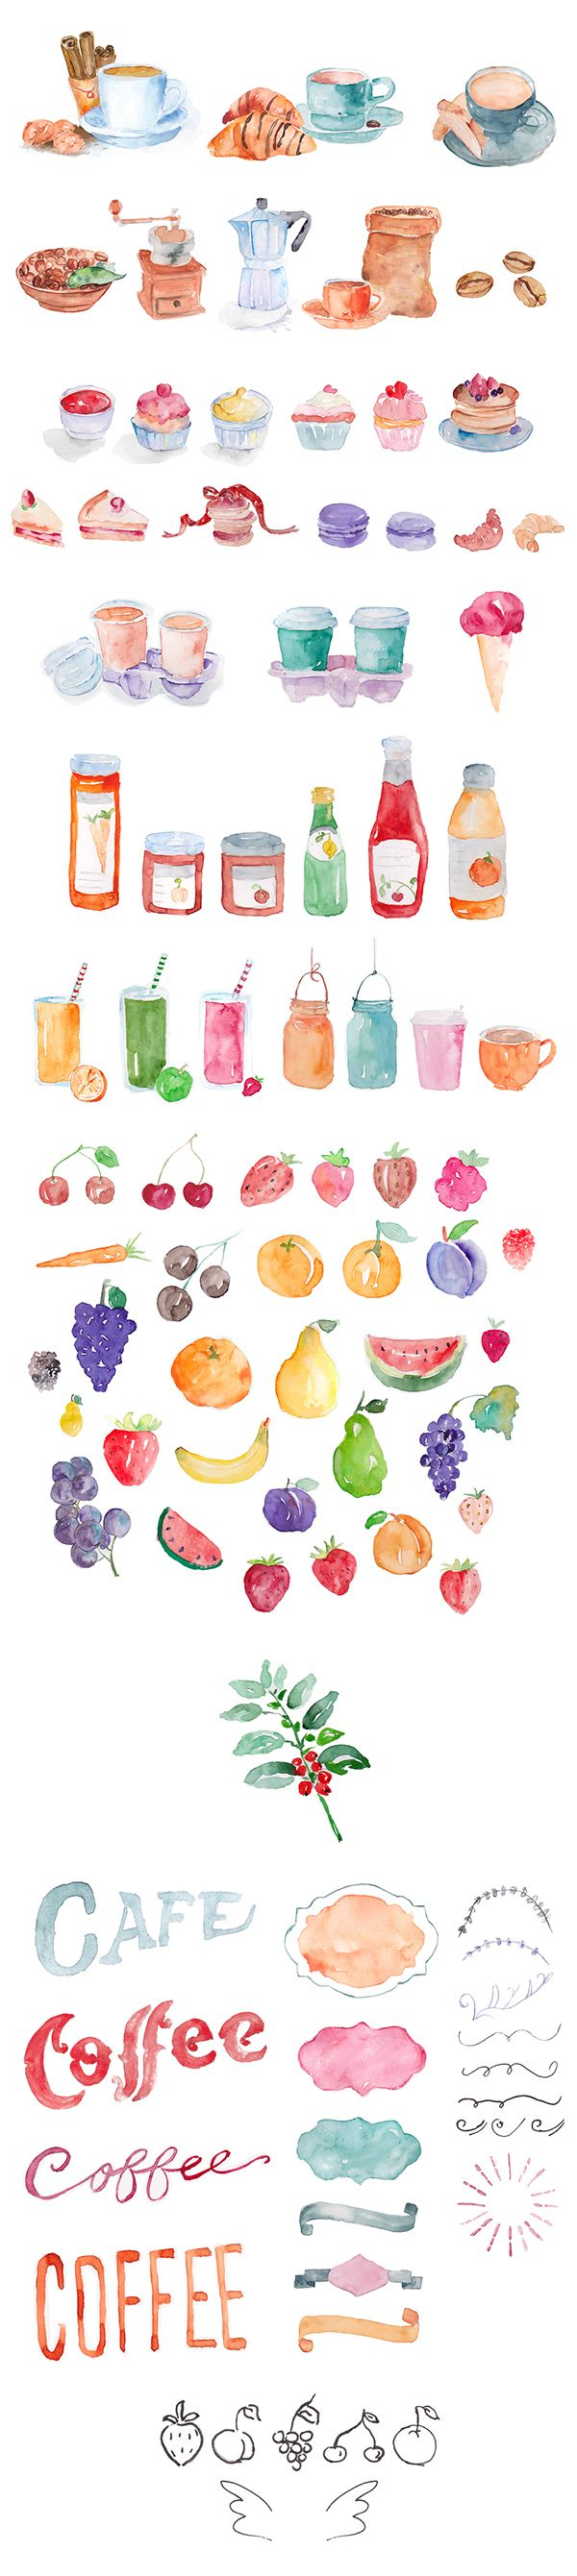 Watercolor Cafe Doodles on Behance